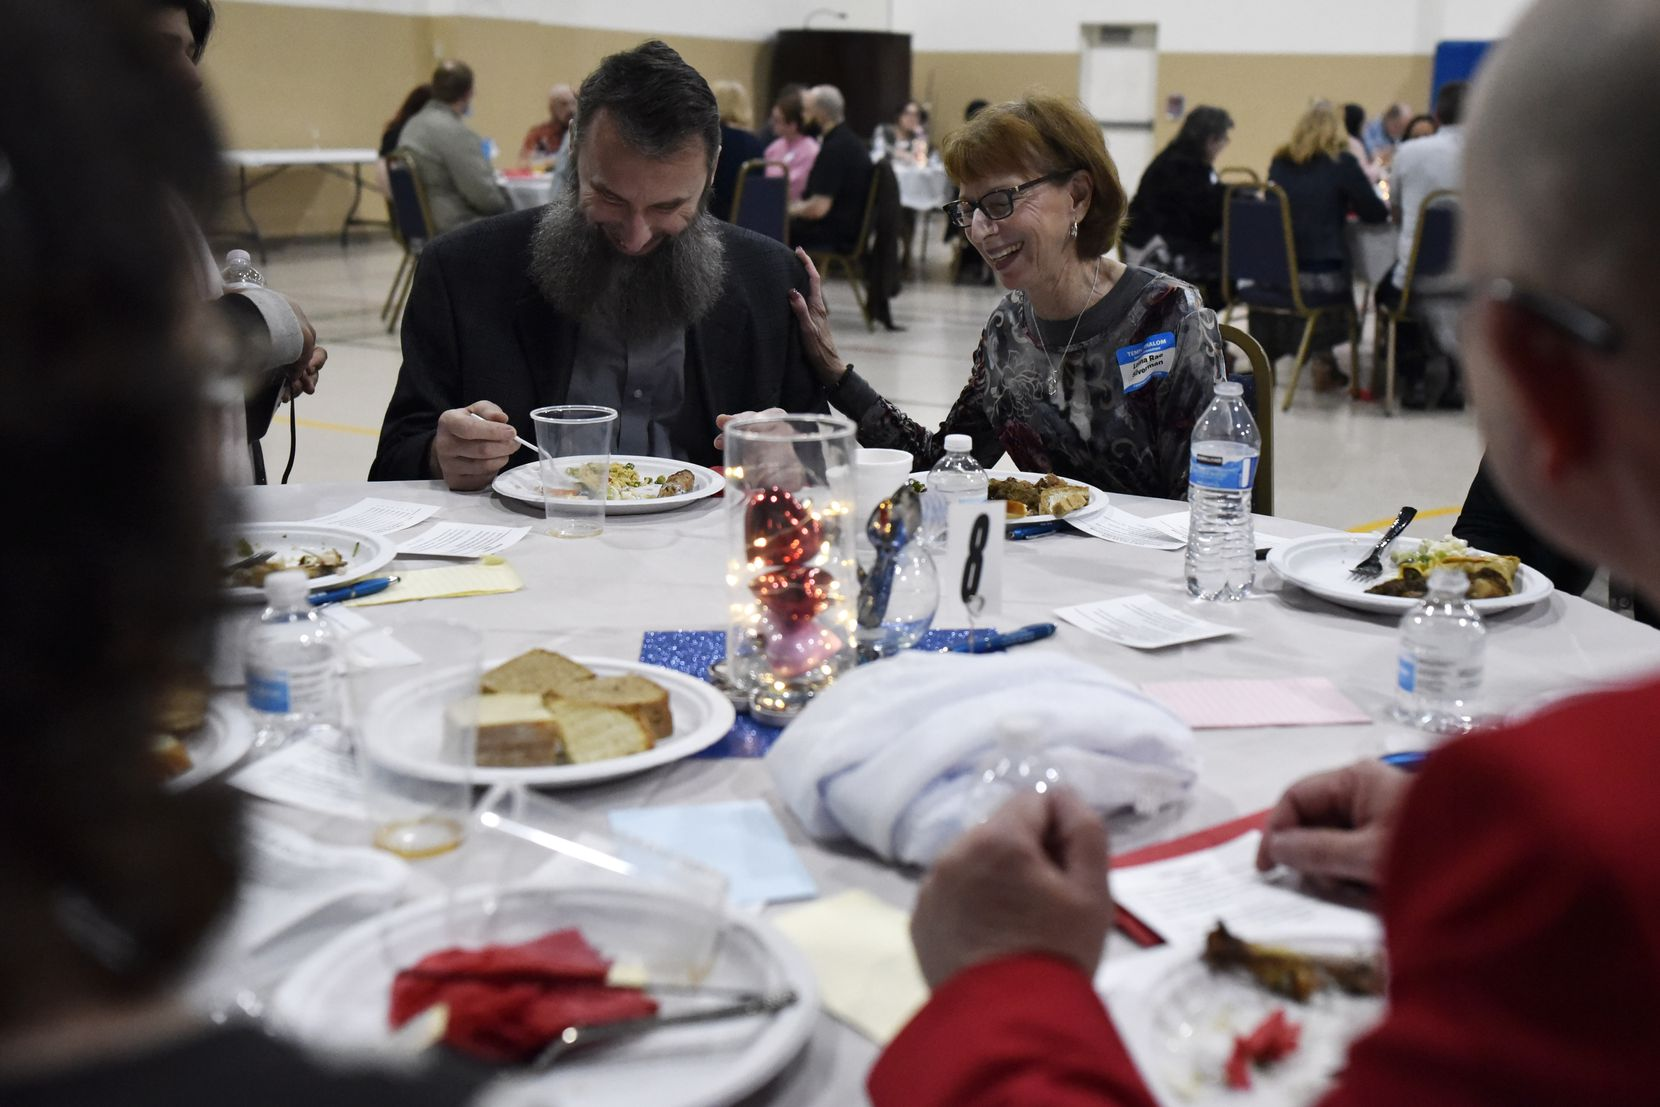 Lonna Rae Silverman (right) of the Temple Shalom steering committee reacts with laughter while speaking with Imam Shpendim Nadzaku of the Islamic Association of North Texas and other leaders during a Friends for Good event.